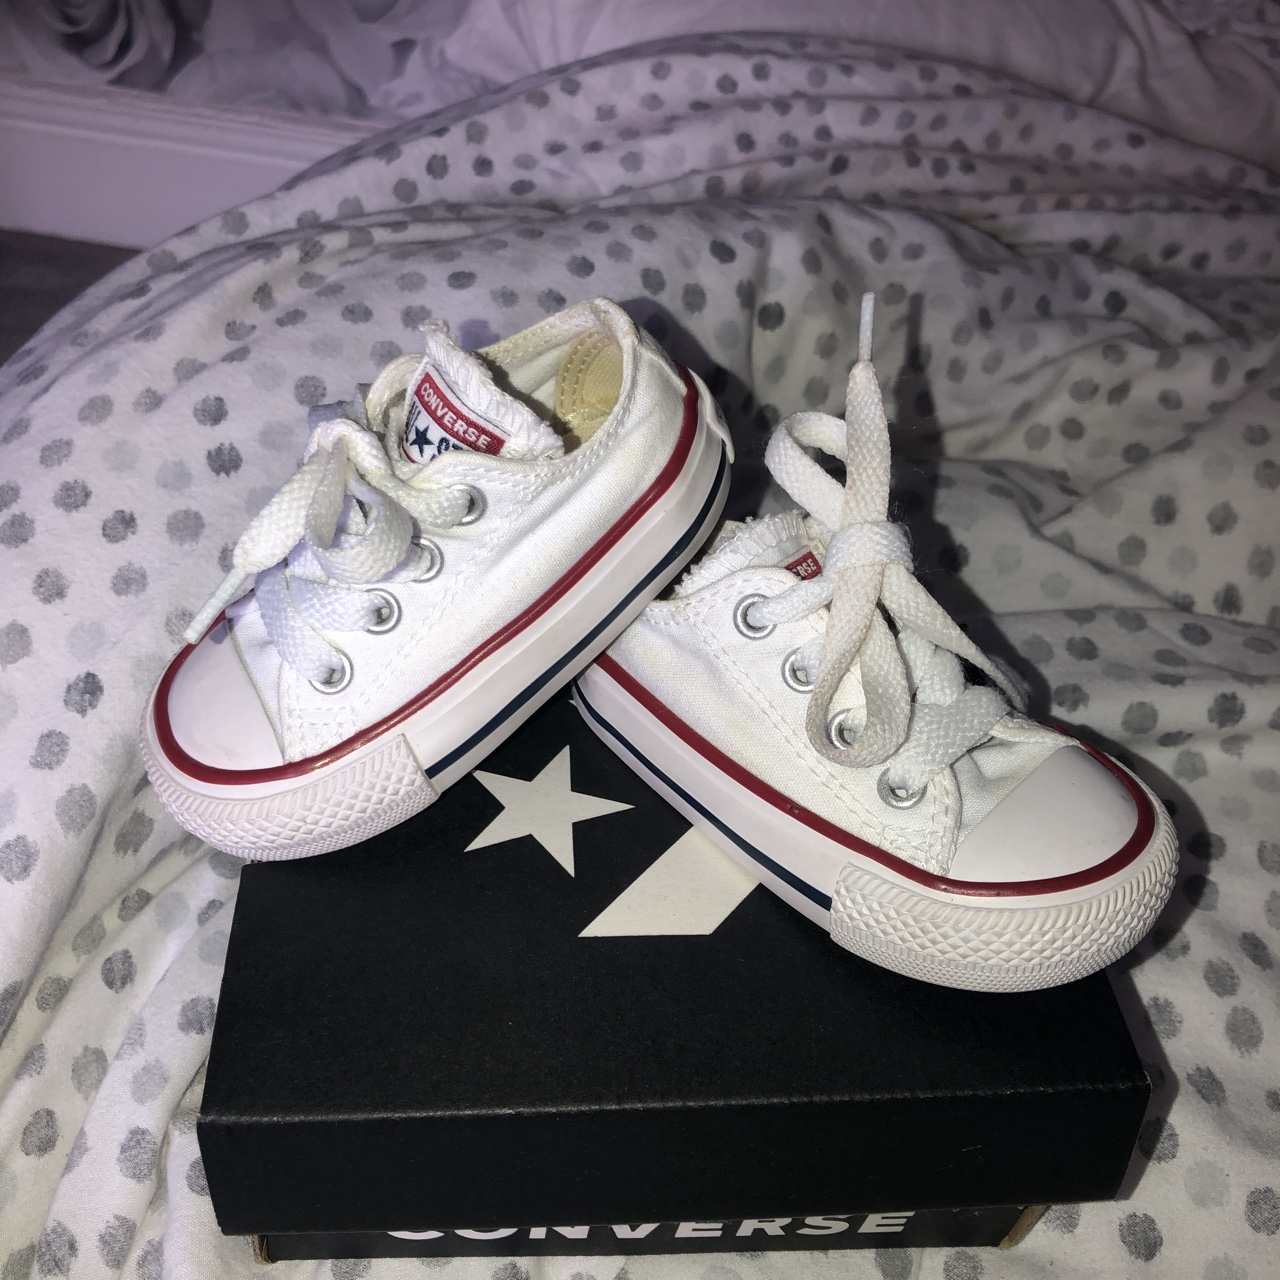 Baby White Converse Pram Shoes Good Condition White Baby Converse Size 3 Worn A Depop